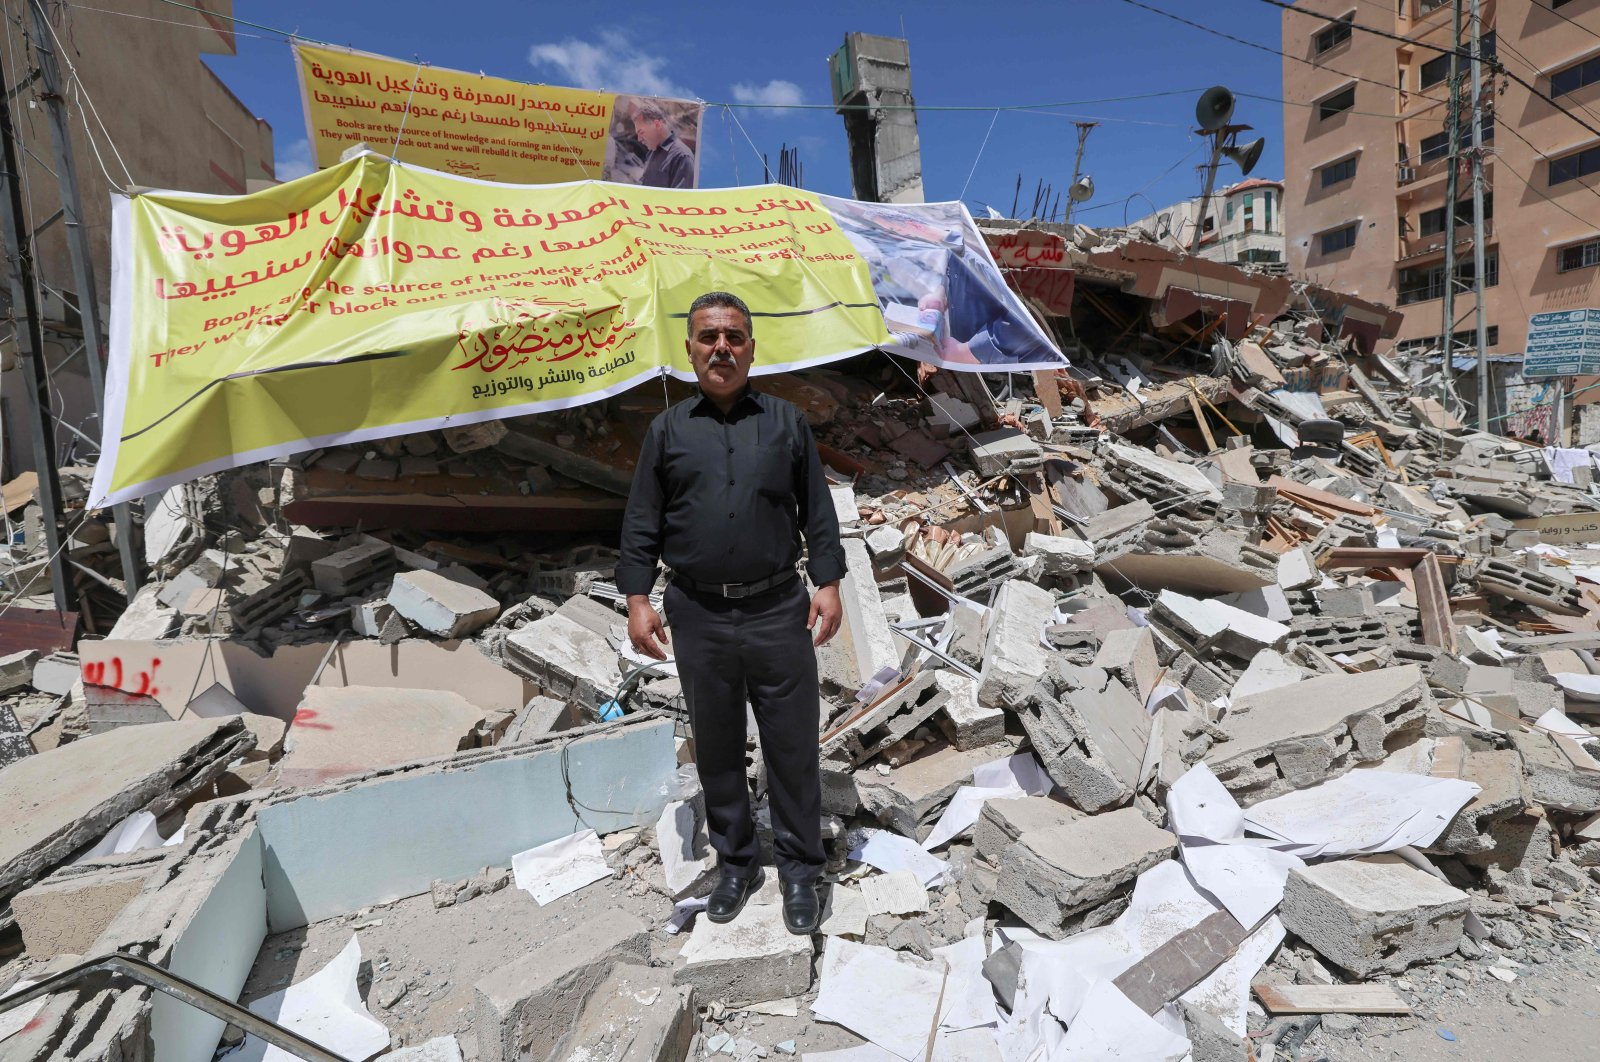 Samir Mansour, Palestinian owner of the eponymous bookstore and publishing house that had the largest collection of English literature in Gaza, standing in front of the rubble of his bookshop after it was destroyed by Israeli airstrikes, Gaza City, Palestine, May 22, 2021 (AFP Photo)